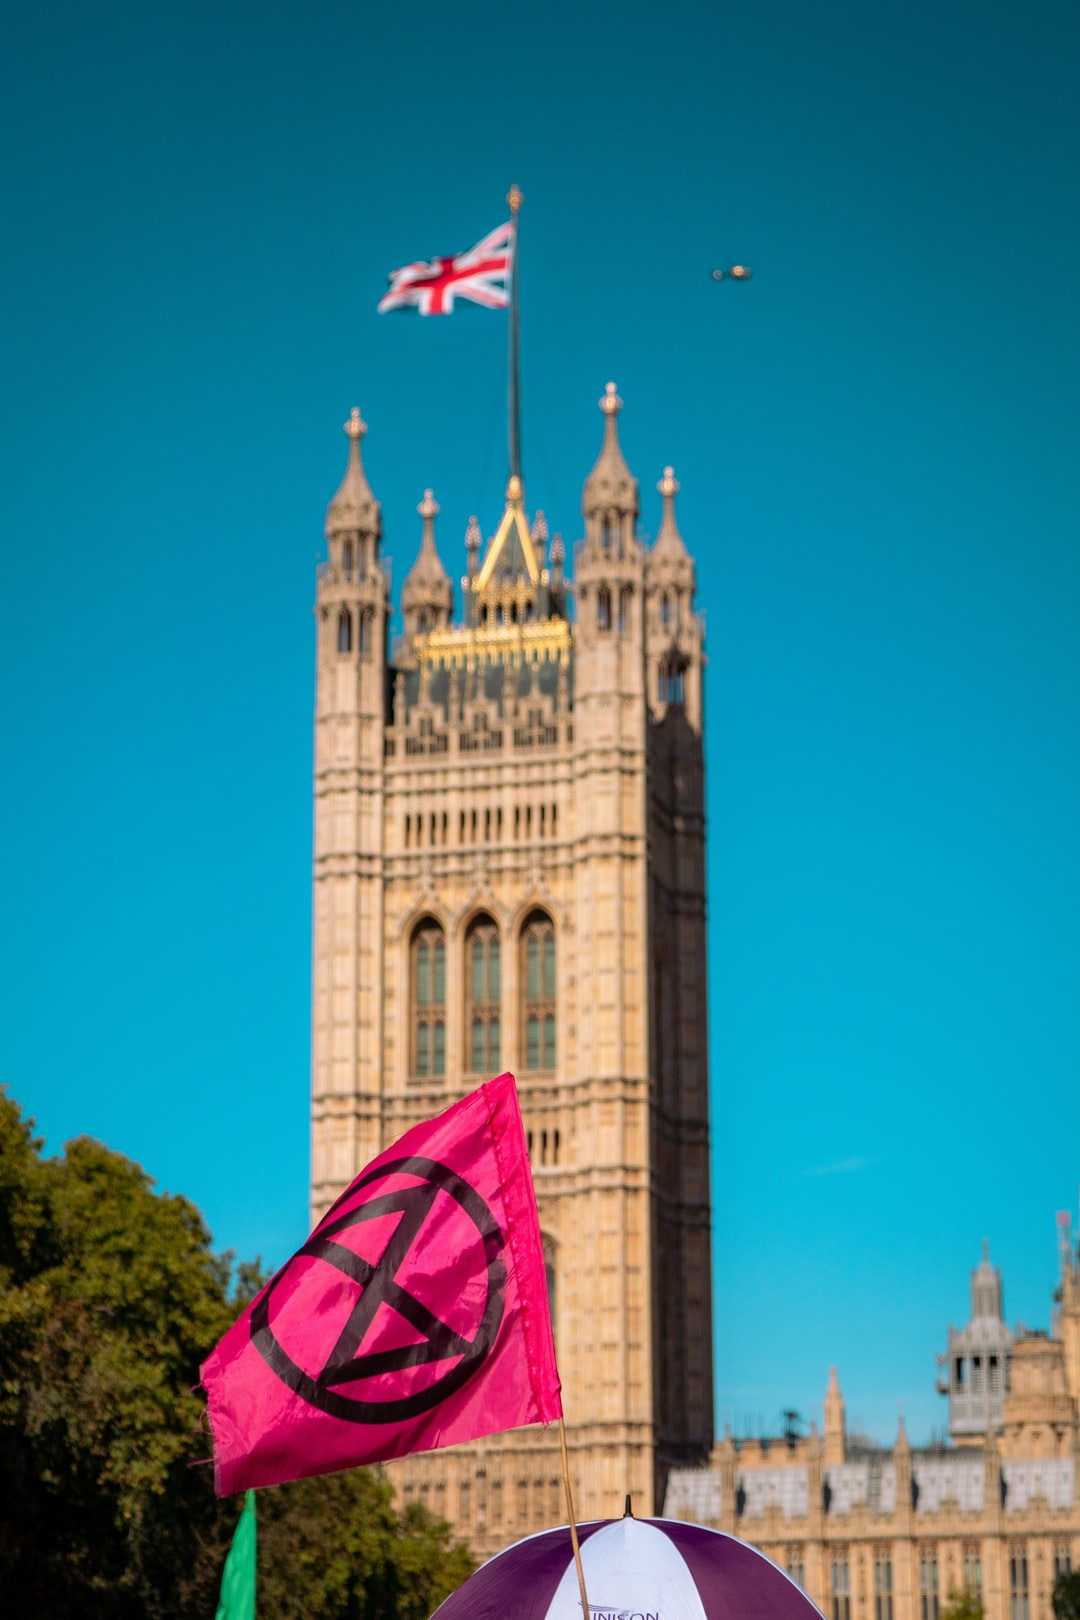 Extinction rebellion flag in front of Westminster and English flag, during a global strike for climate change.